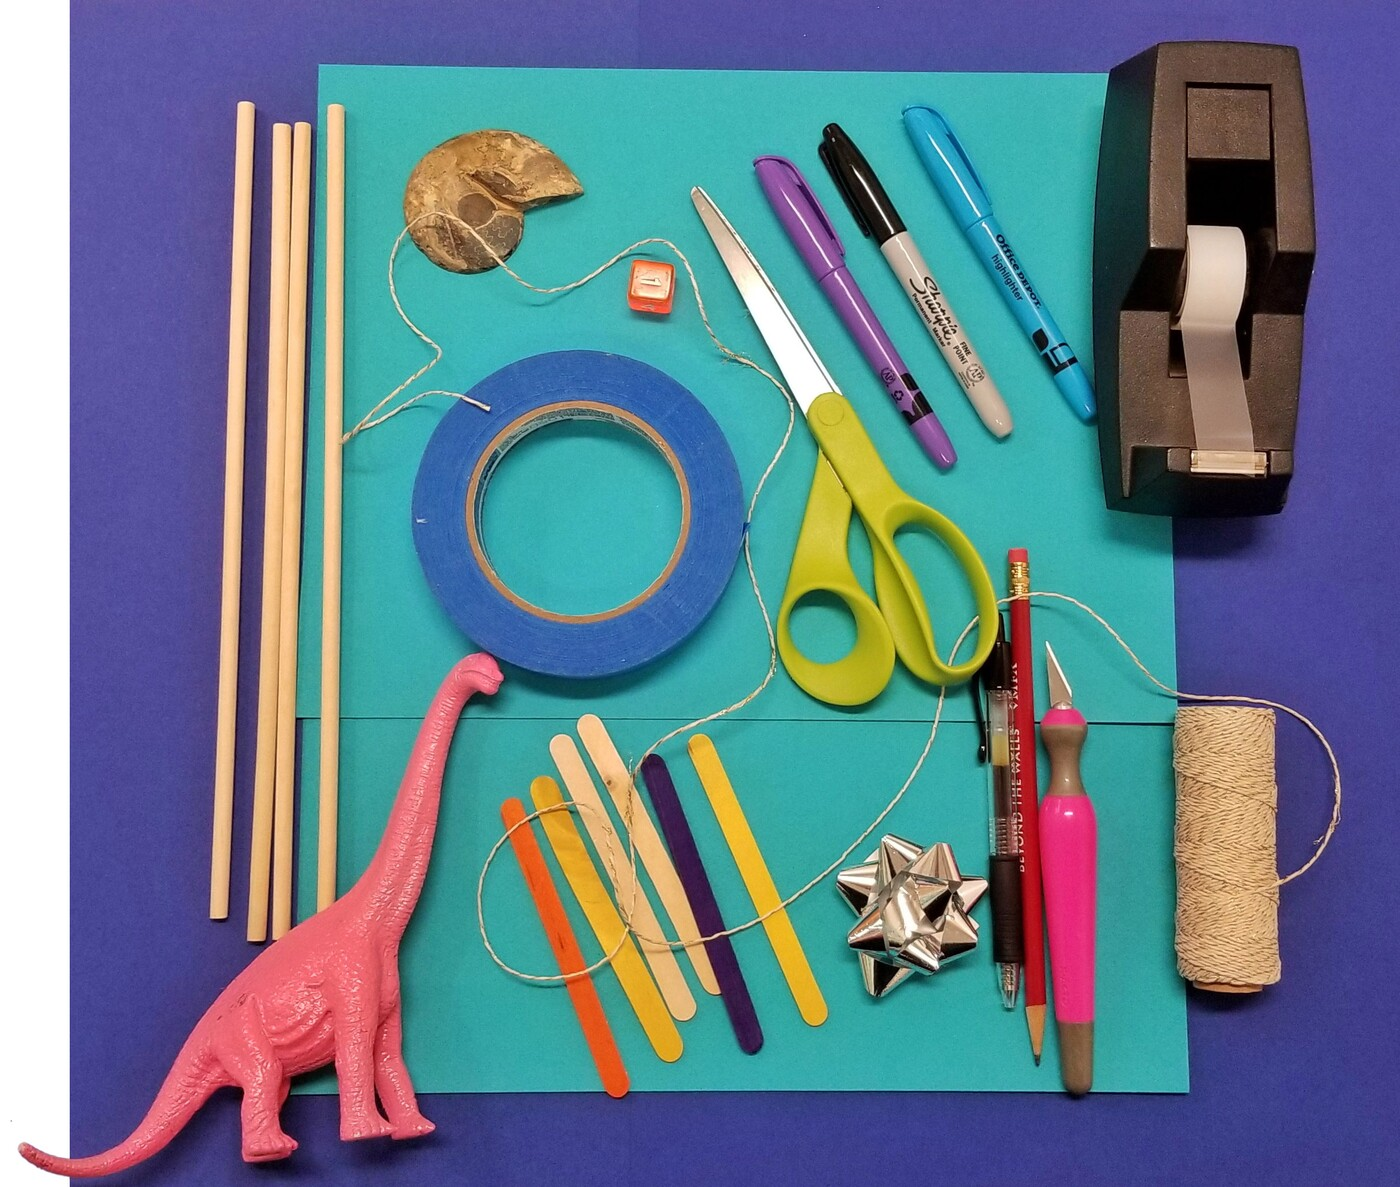 A view of art supplies on a table: wooden dowels, a pink toy brontosaurus, string, a seashell, blue masking tape, popsicle sticks, scissors, markers, pencils, a gold gift bow, a tape dispenser